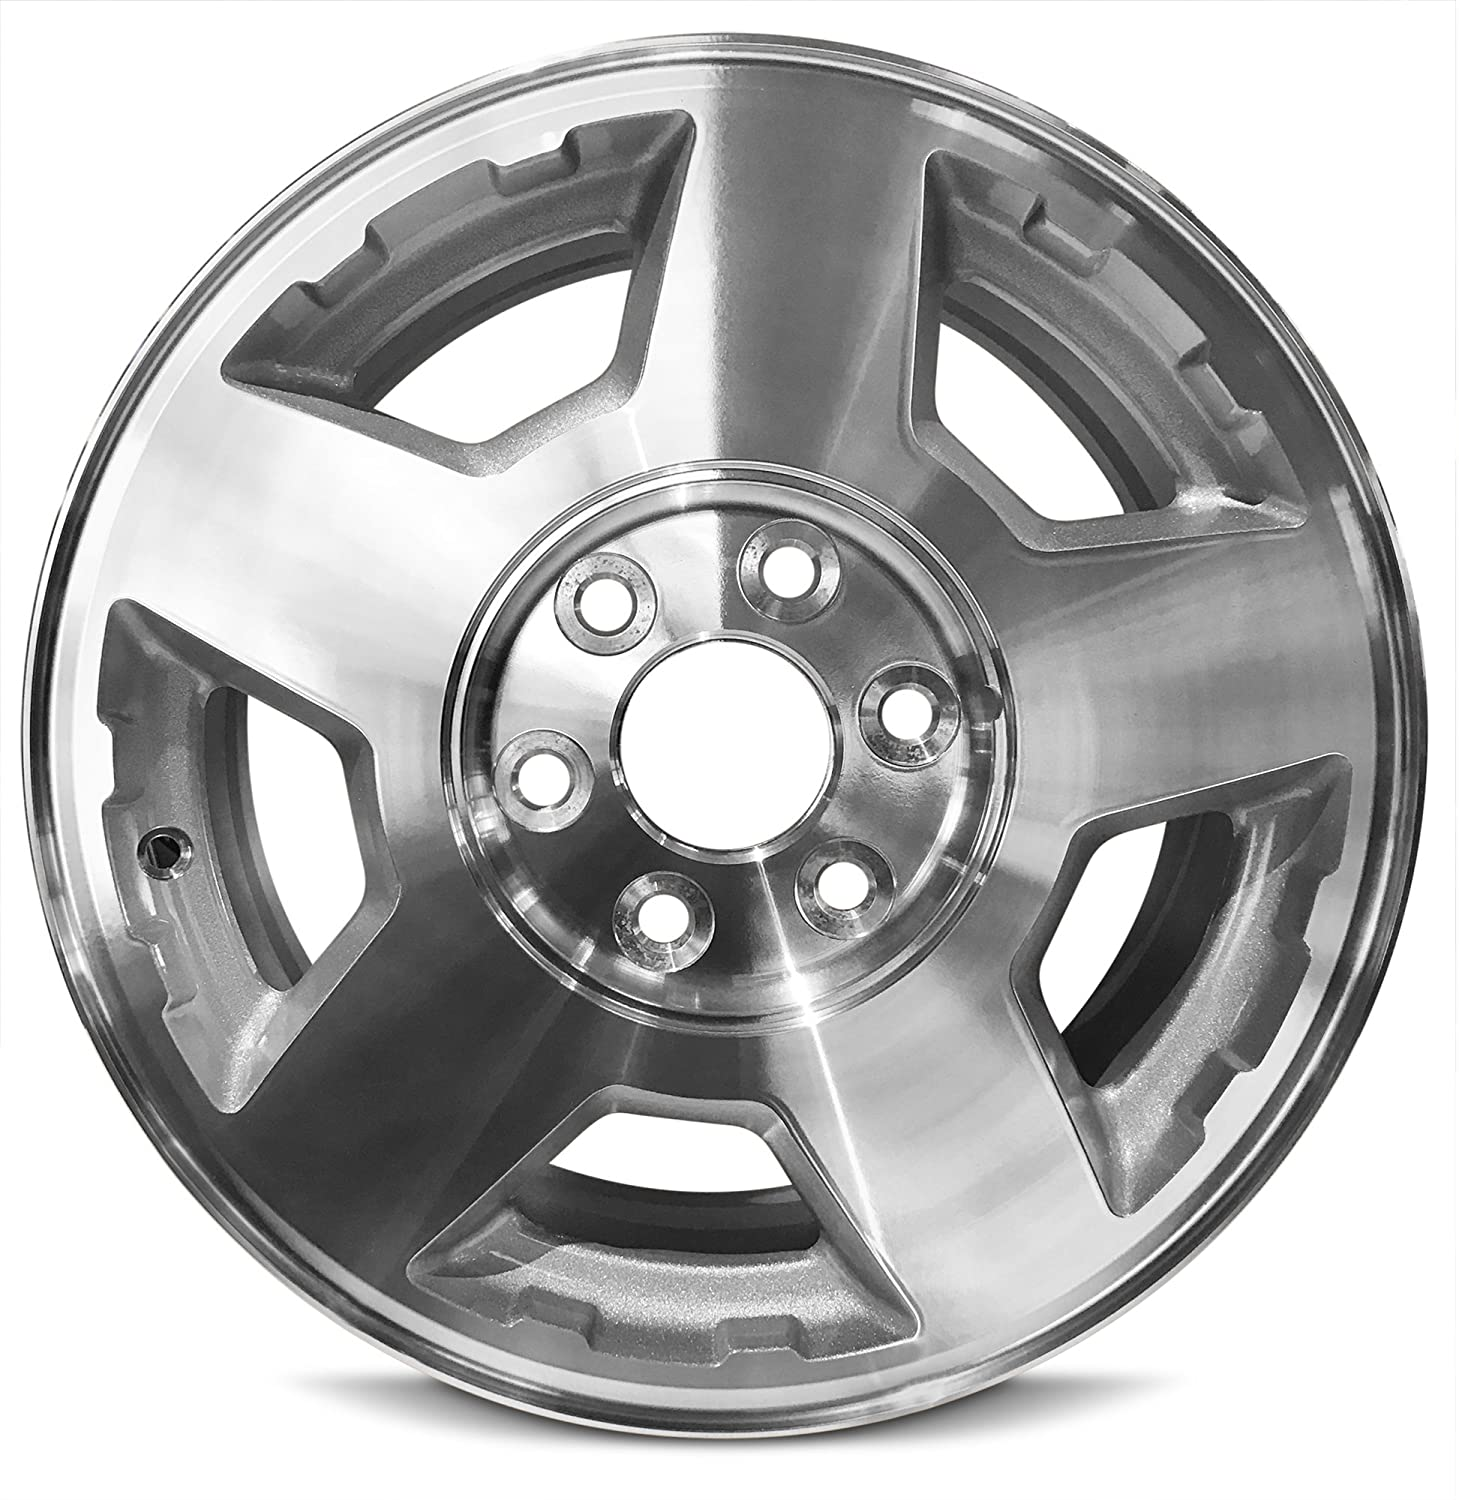 Road Ready Car Wheel For 2004 2007 Chevrolet Silverado 1500 2004 2006 Chevrolet Tahoe 17 Inch 6 Lug Gray Aluminum Rim Fits R17 Tire Exact Oem